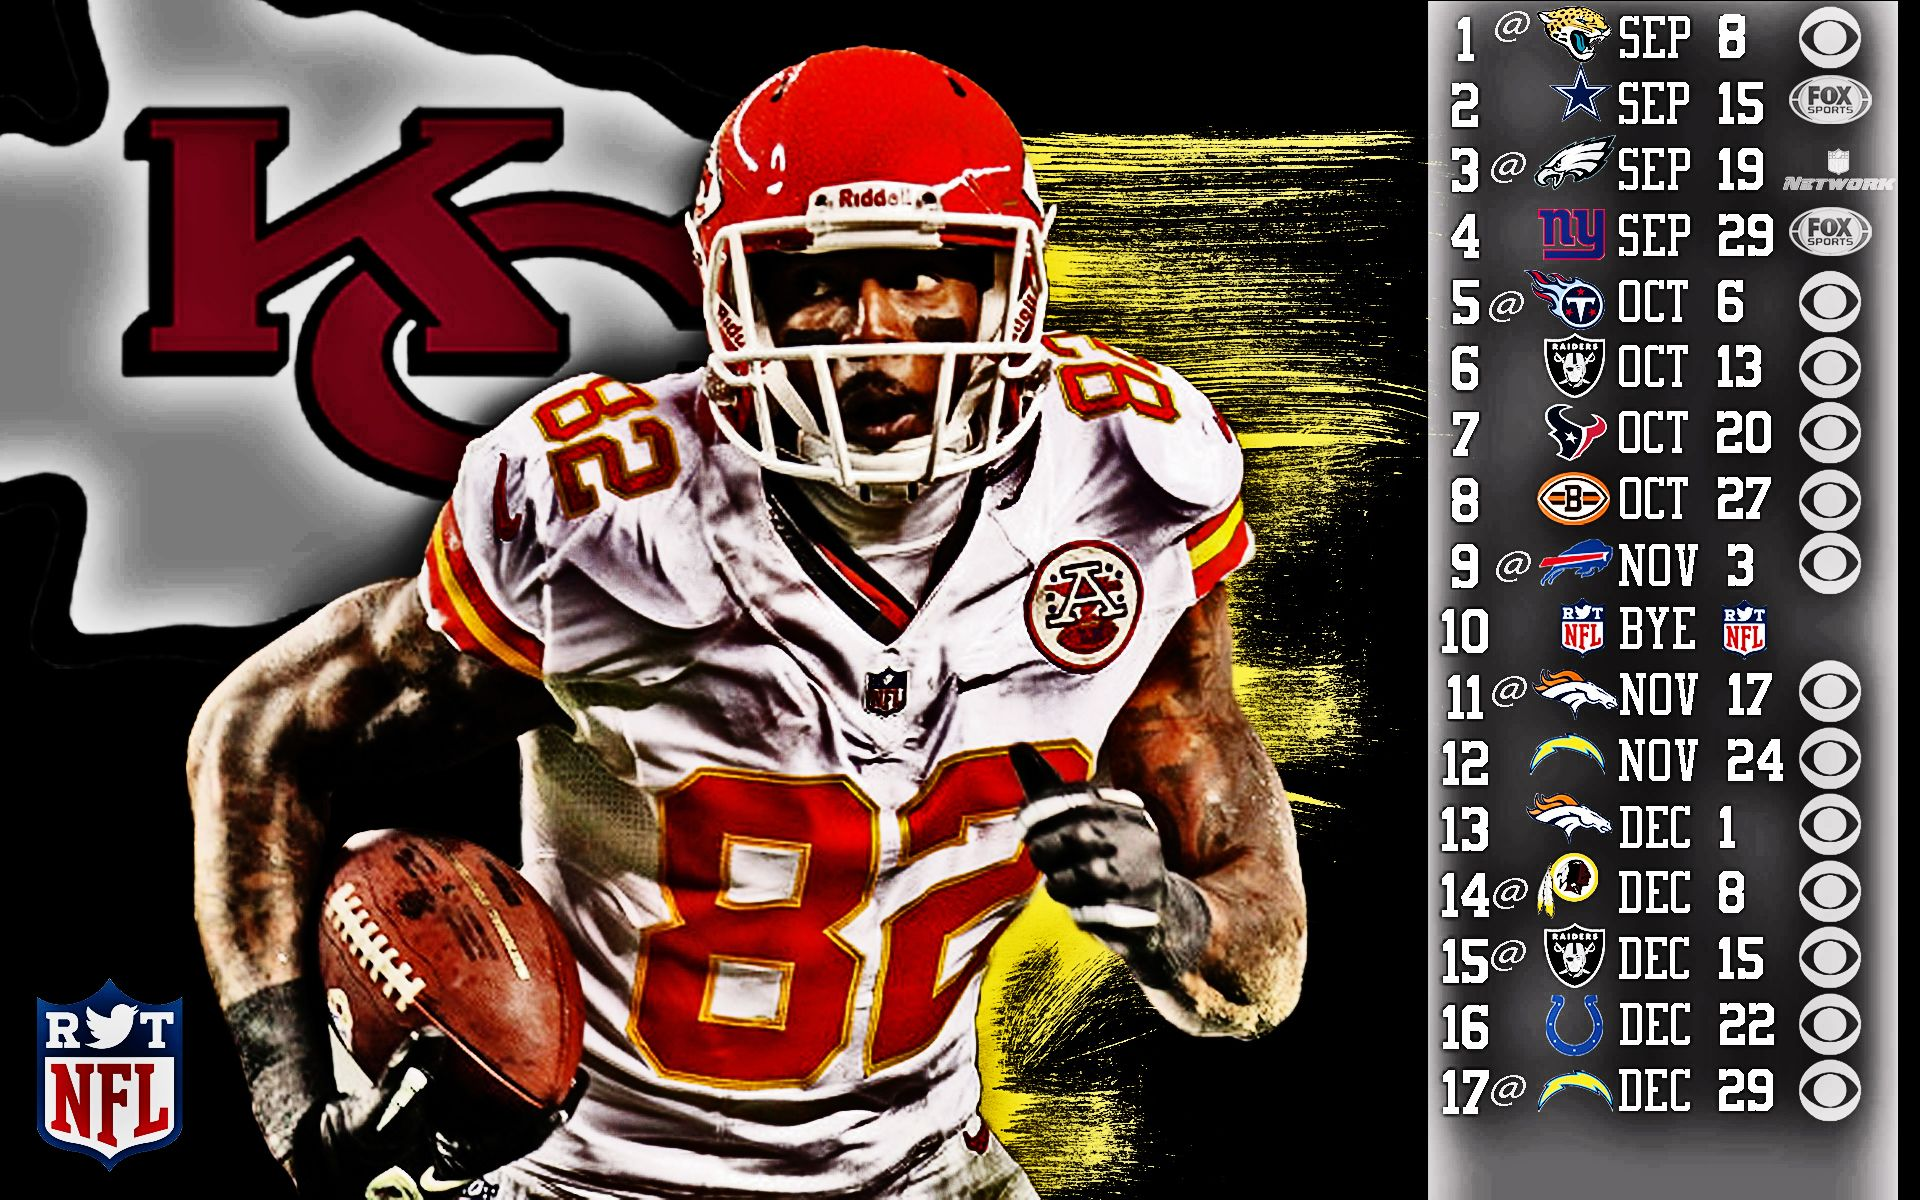 Kc Chiefs Wallpaper 2013 Kansas City Chiefs Football Nfl Wallpaper 1920x1200 130414 Kansas City Chiefs Football Chiefs Football Kansas City Chiefs